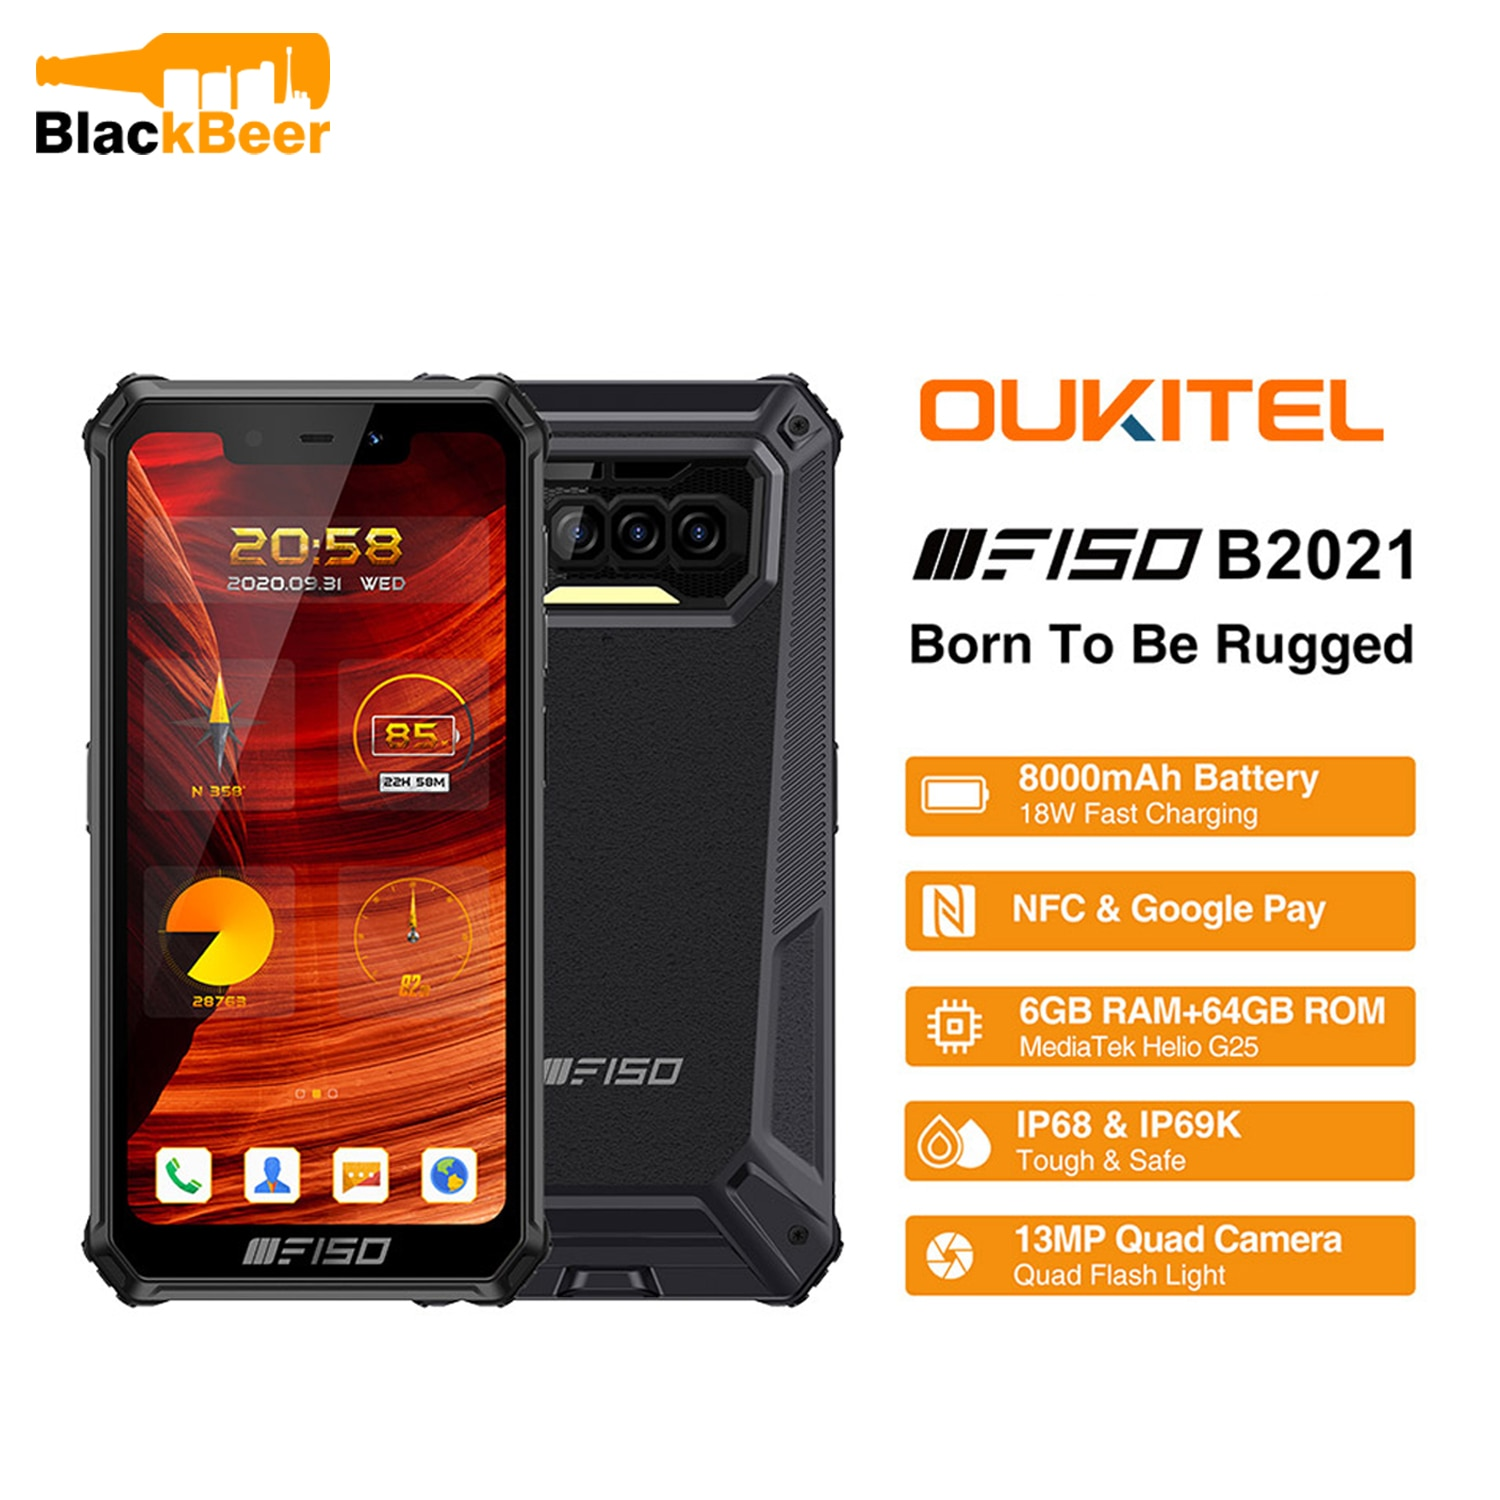 Oukitel F150 B2021 Android 10.0 Smartphone IP68/IP69K Rugged Outdoor Mobile Phone 6GB+64GB Octa Core Cellphone 13MP Rear Camera